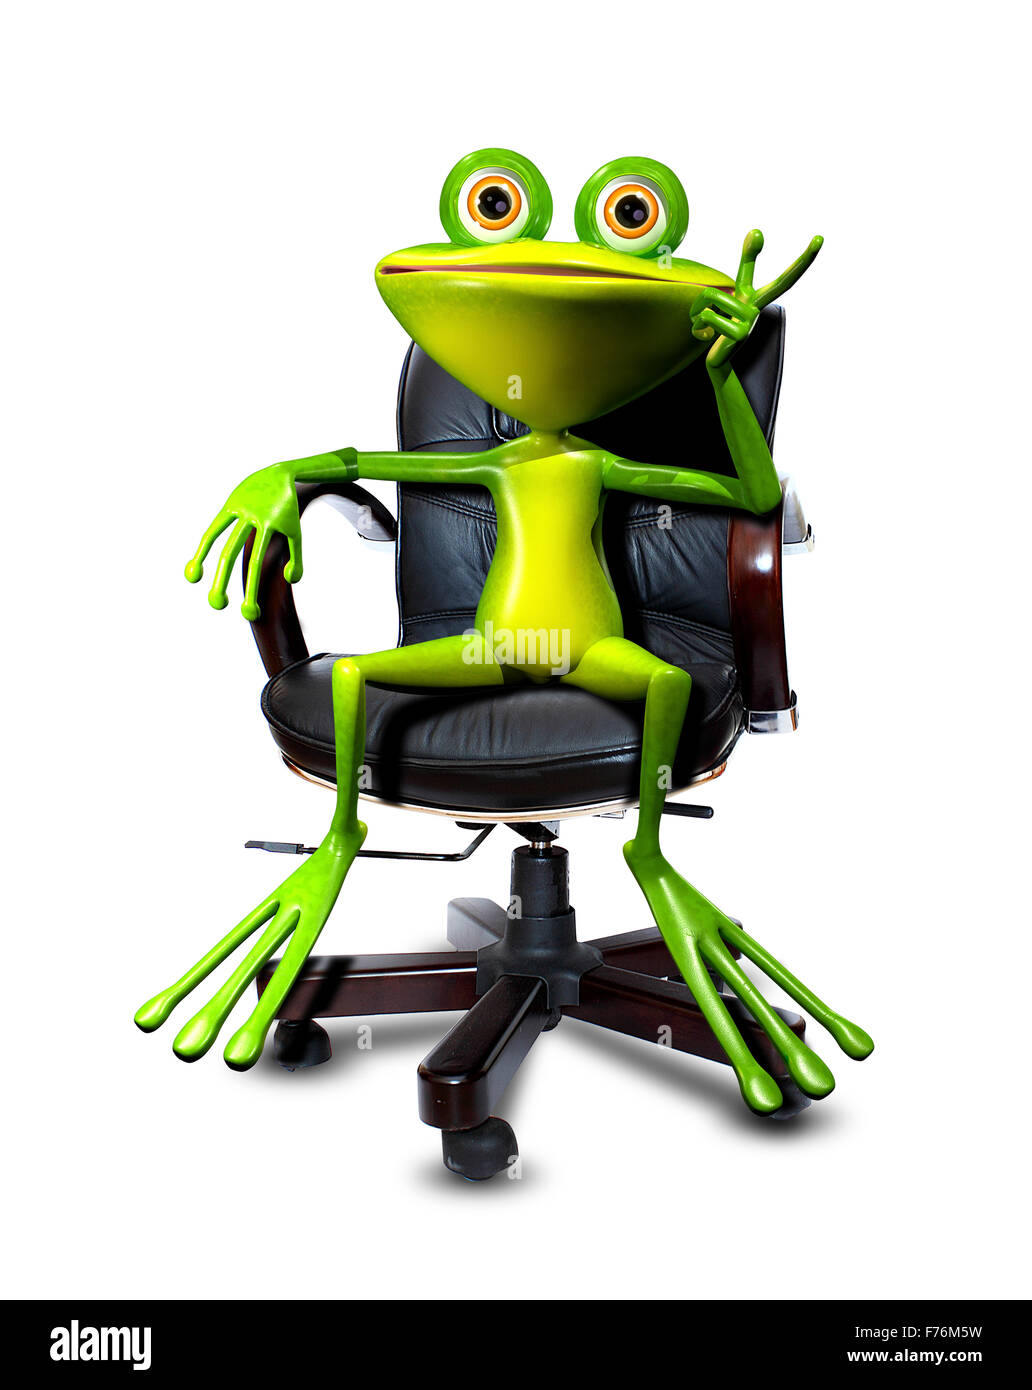 Illustration Cartoon Frog In A Chair Head Stock Photo ...